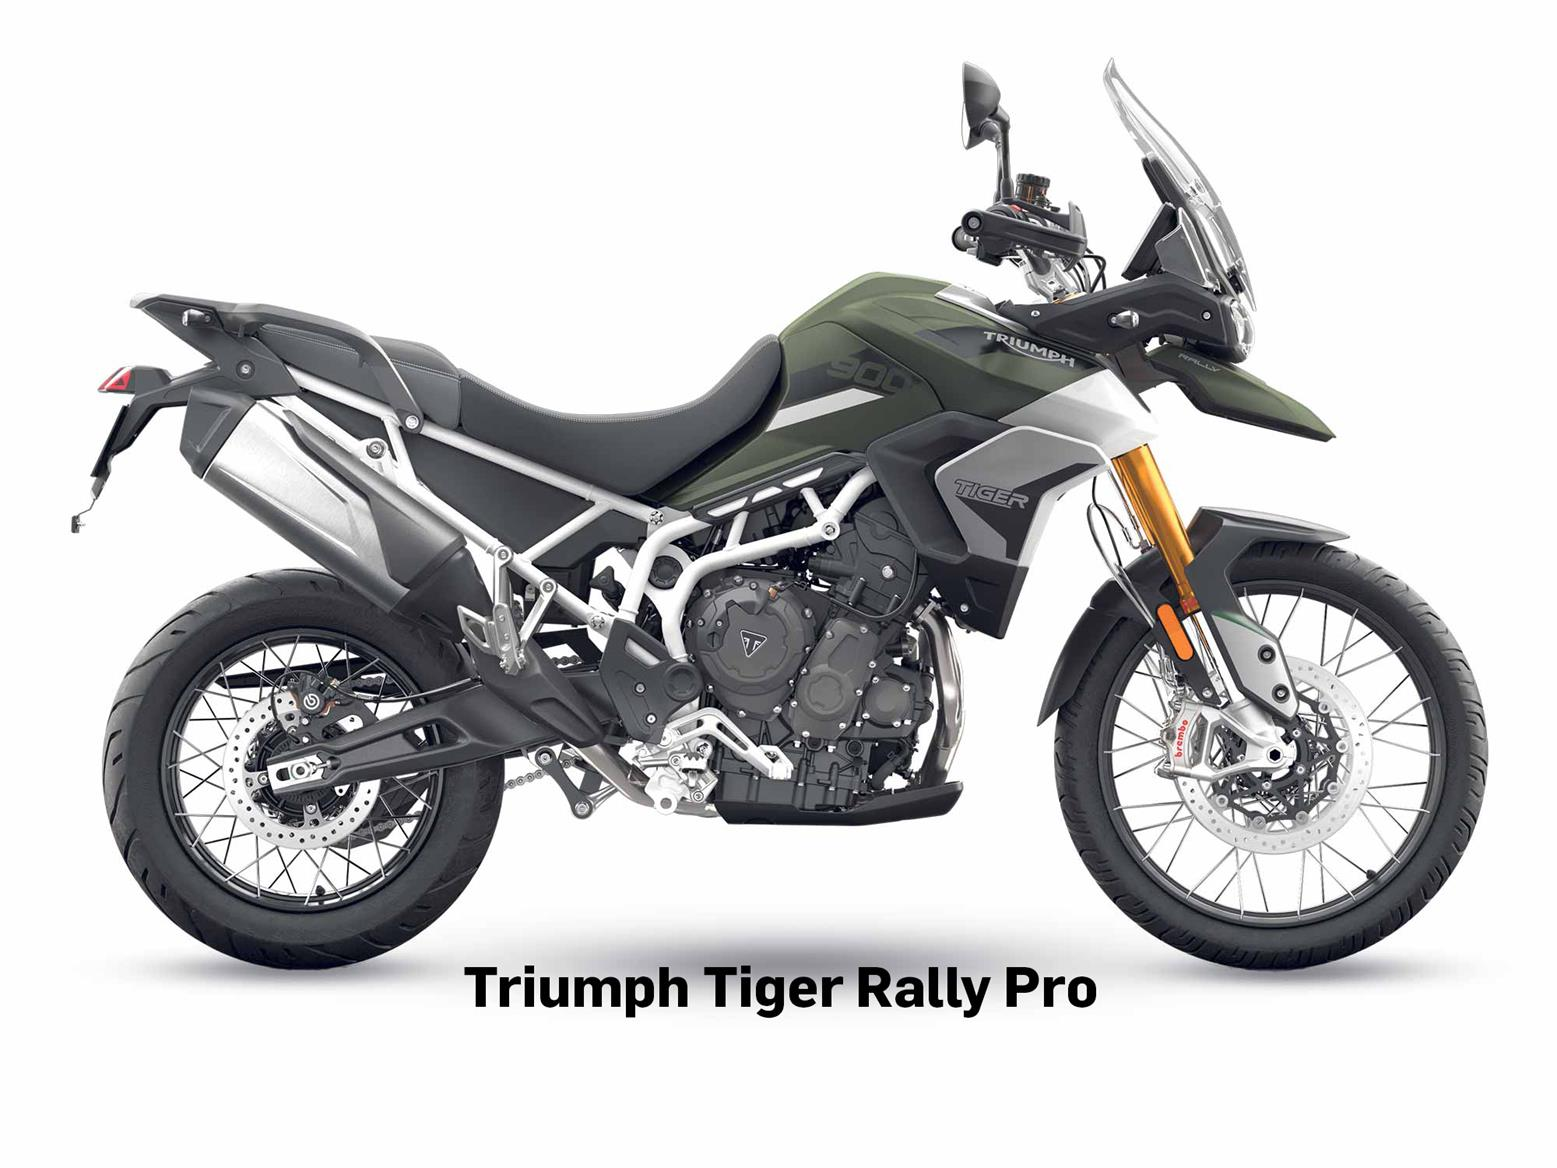 Read MCN's expert Triumph Tiger 900 Rally Pro long term test review here